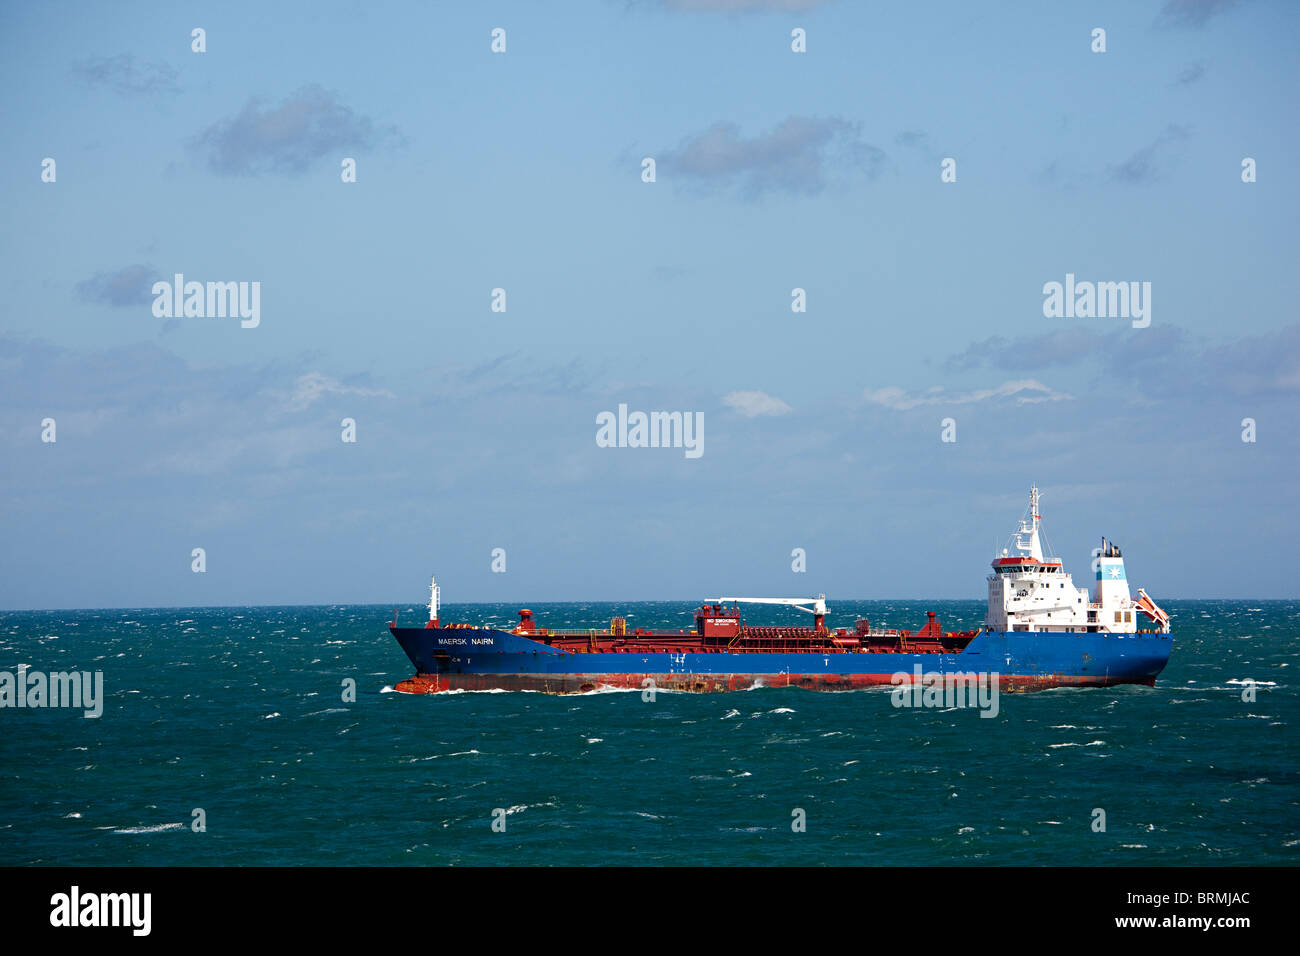 Maersk Nairn tanker in English Channel - Stock Image